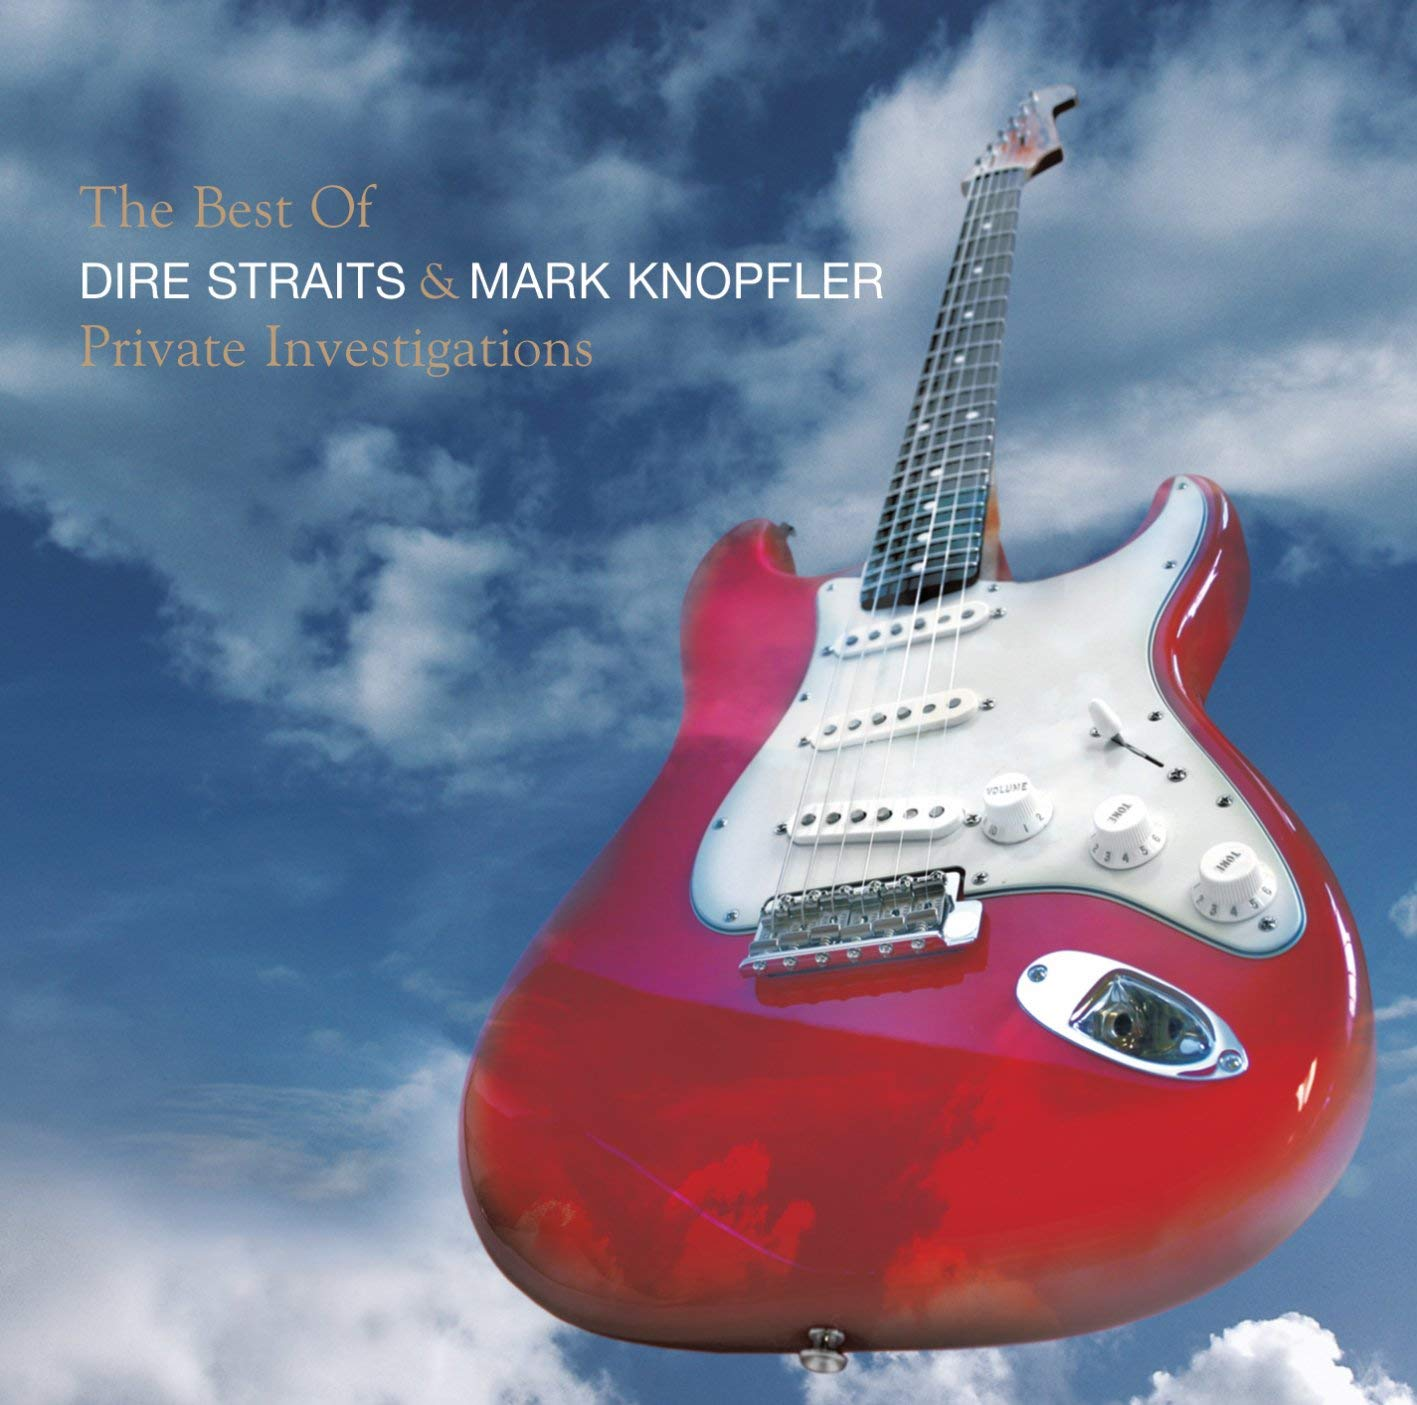 The Best of Dire Straits & Mark Knopfler - Private Investigations ...